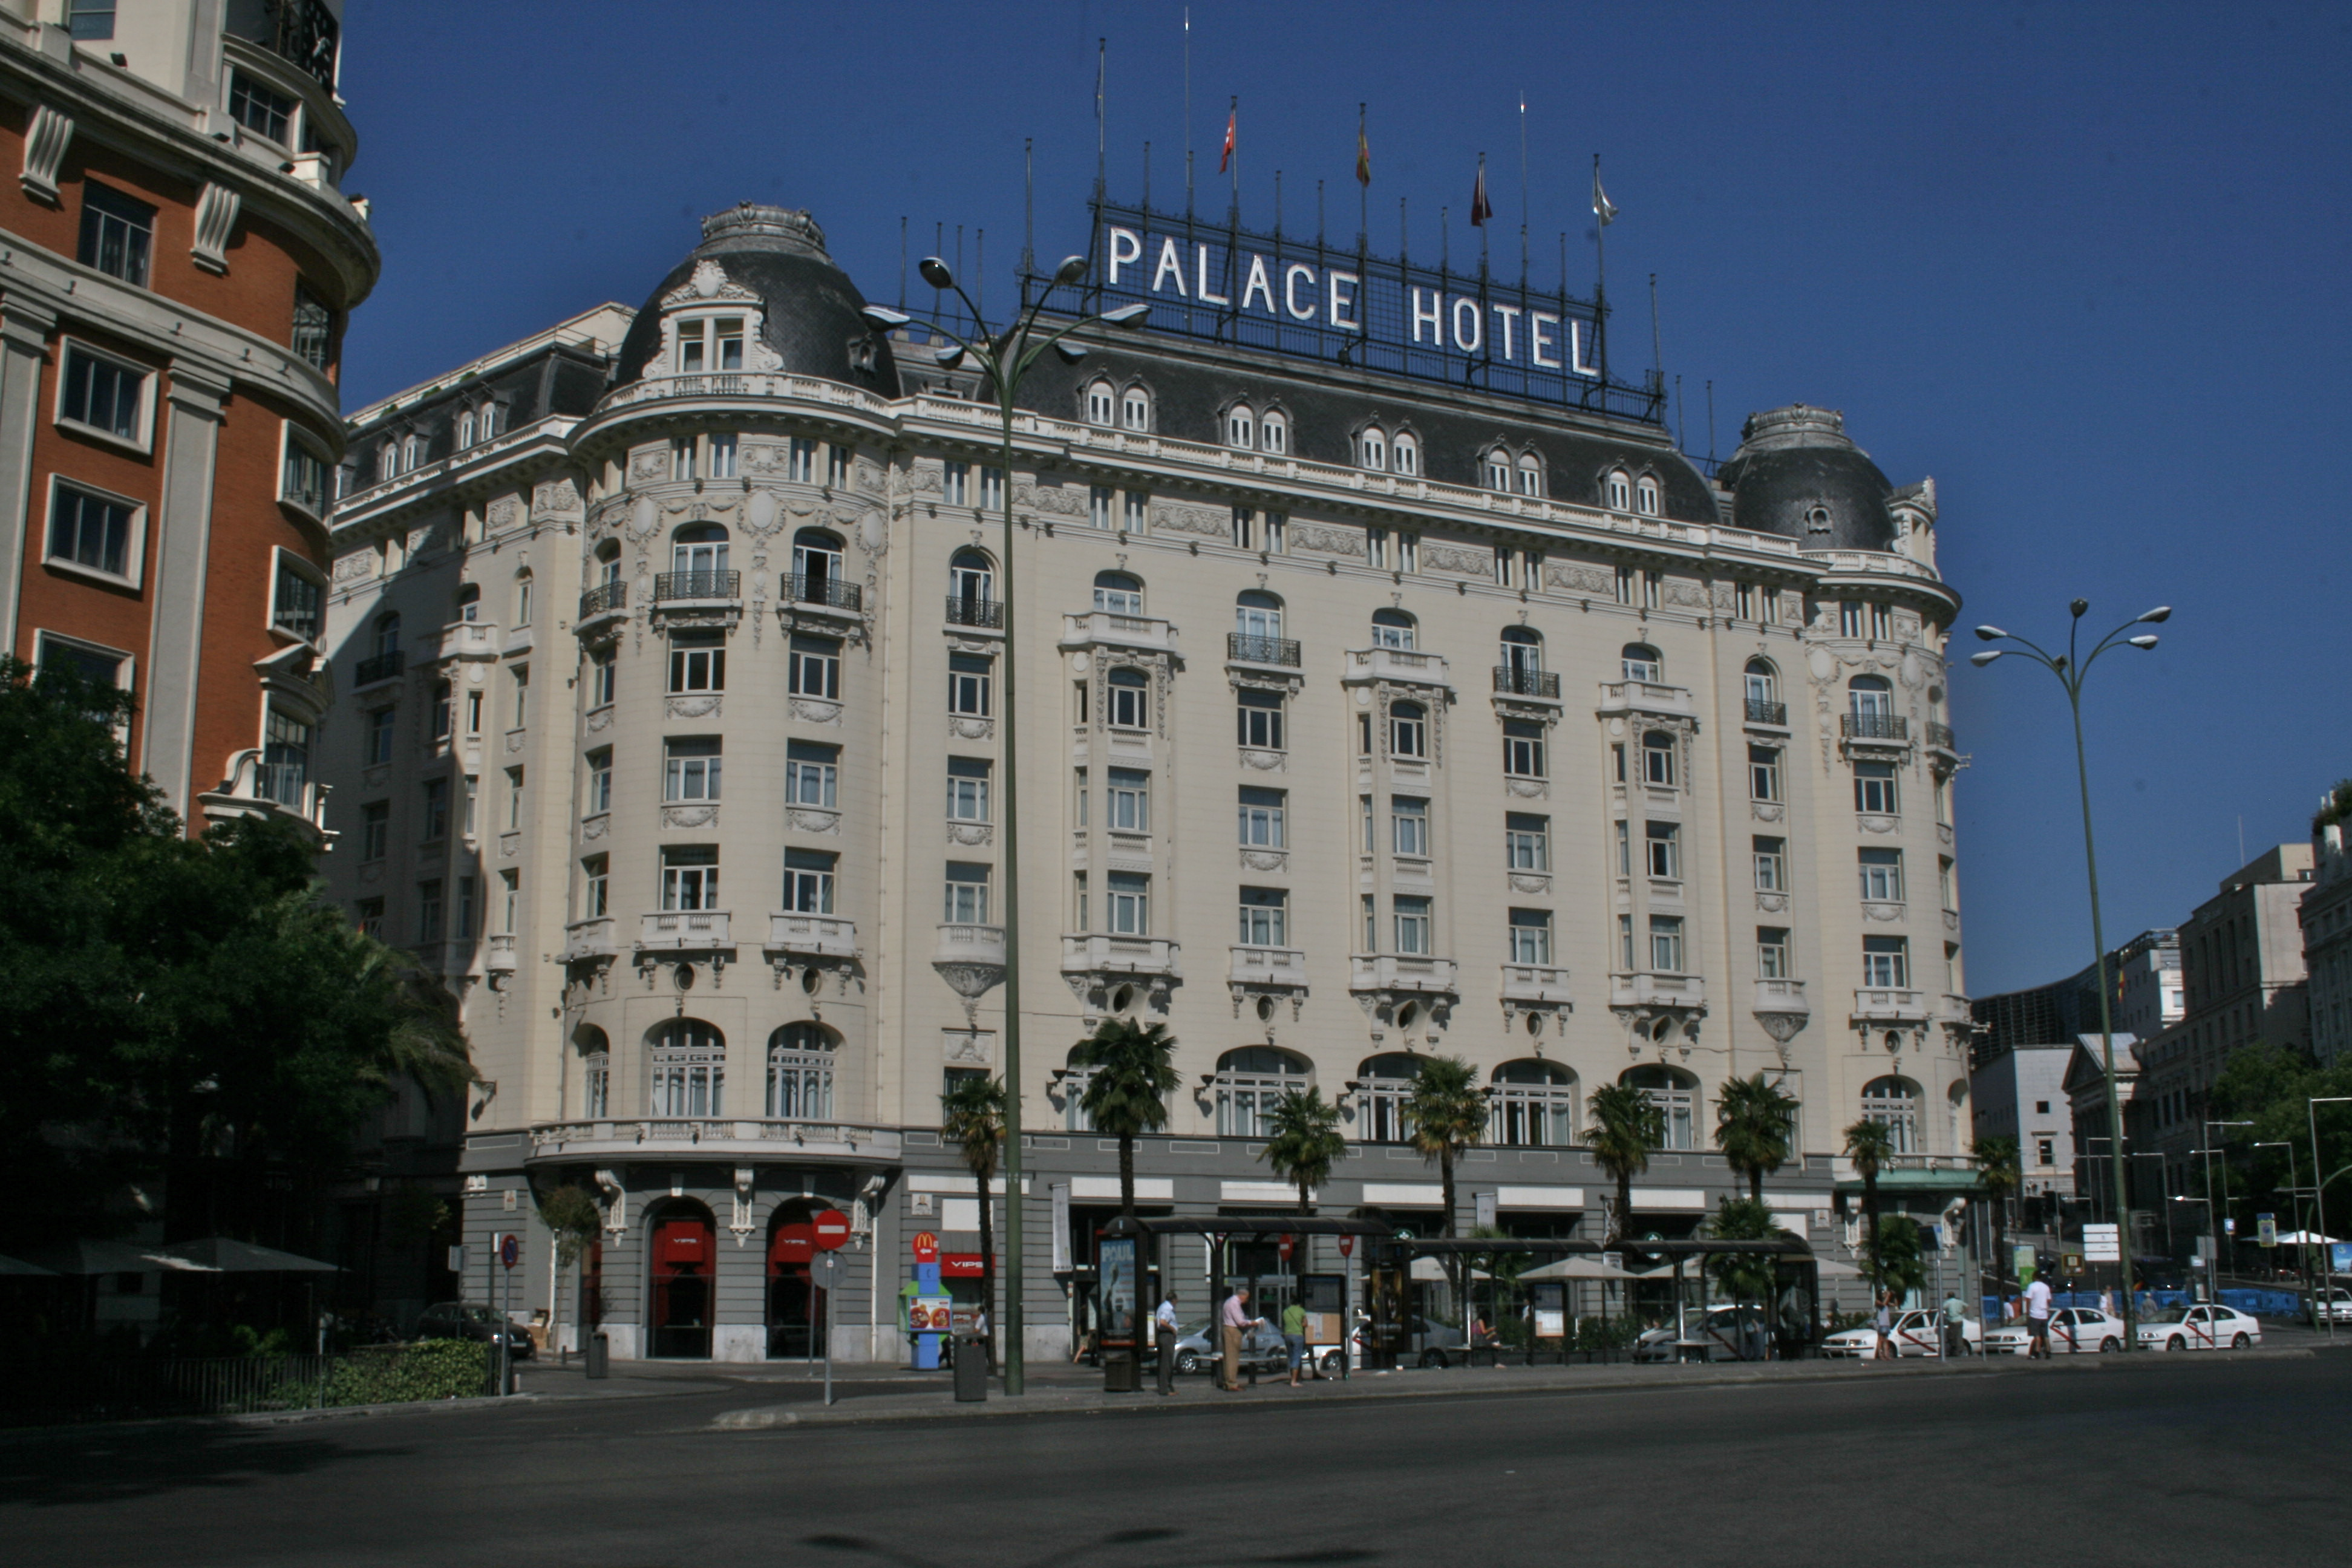 The Palace Hotel Douglas